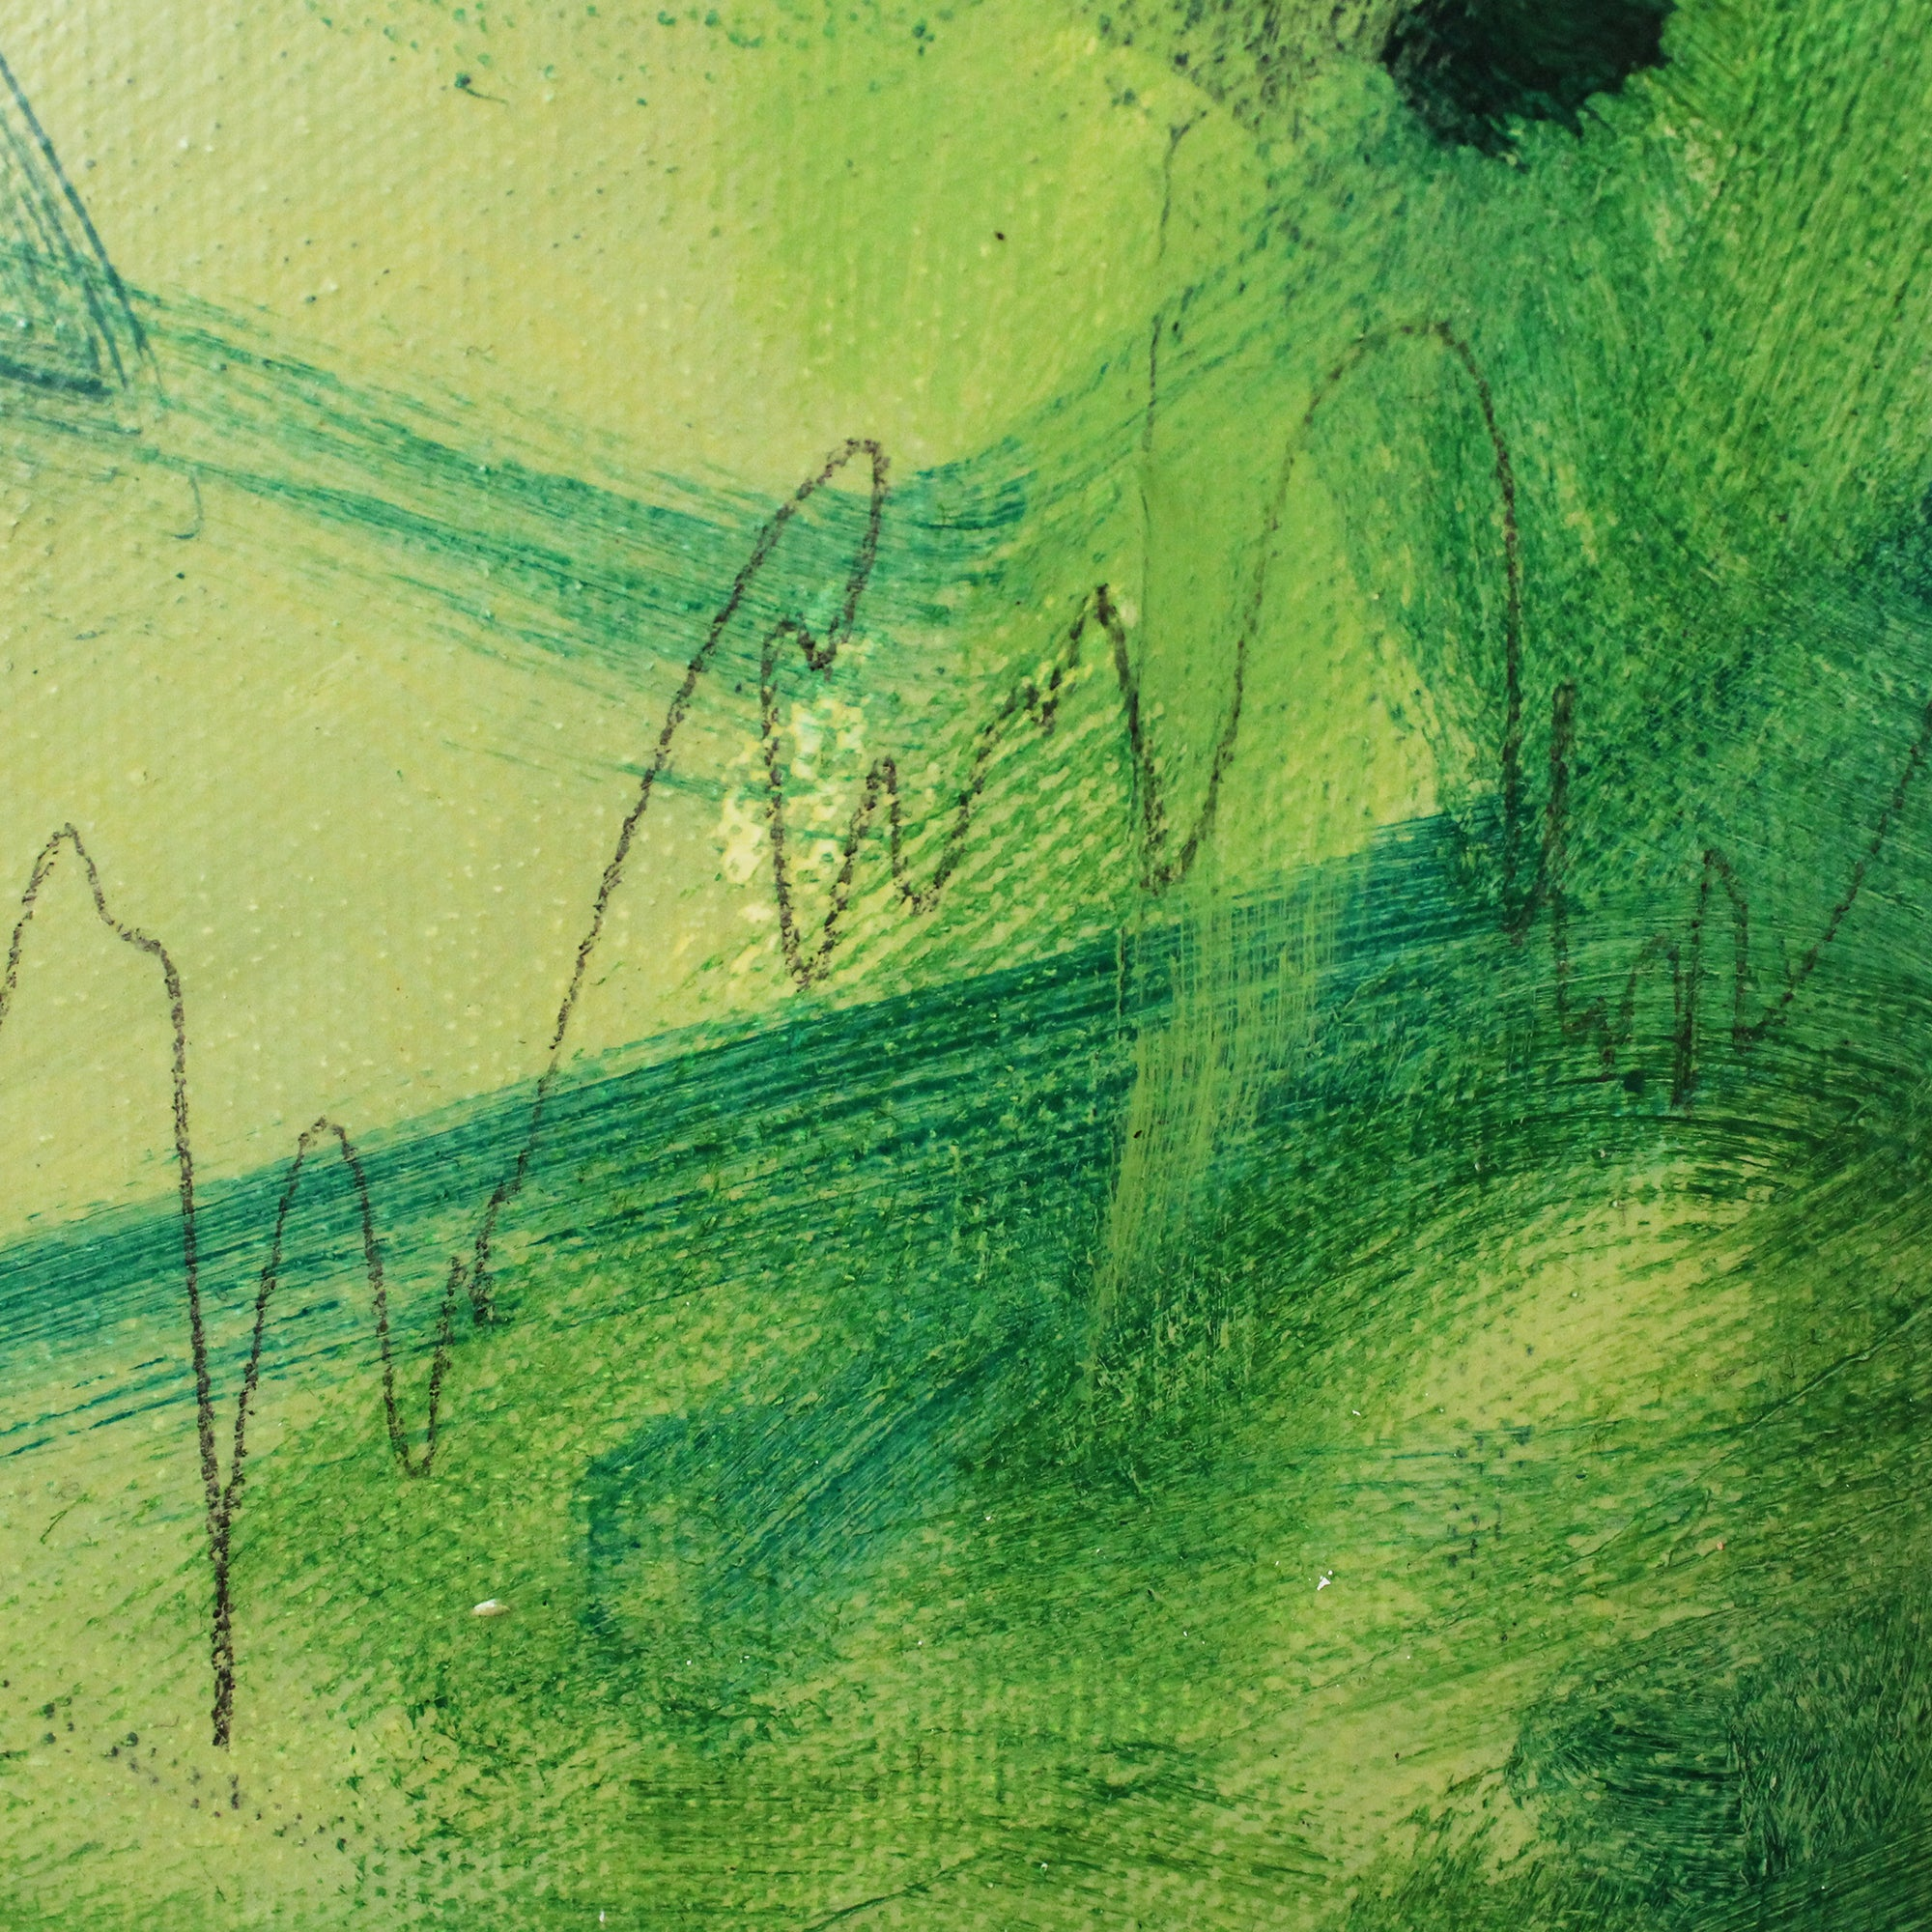 'Green Surroundings' by Tammy Staab